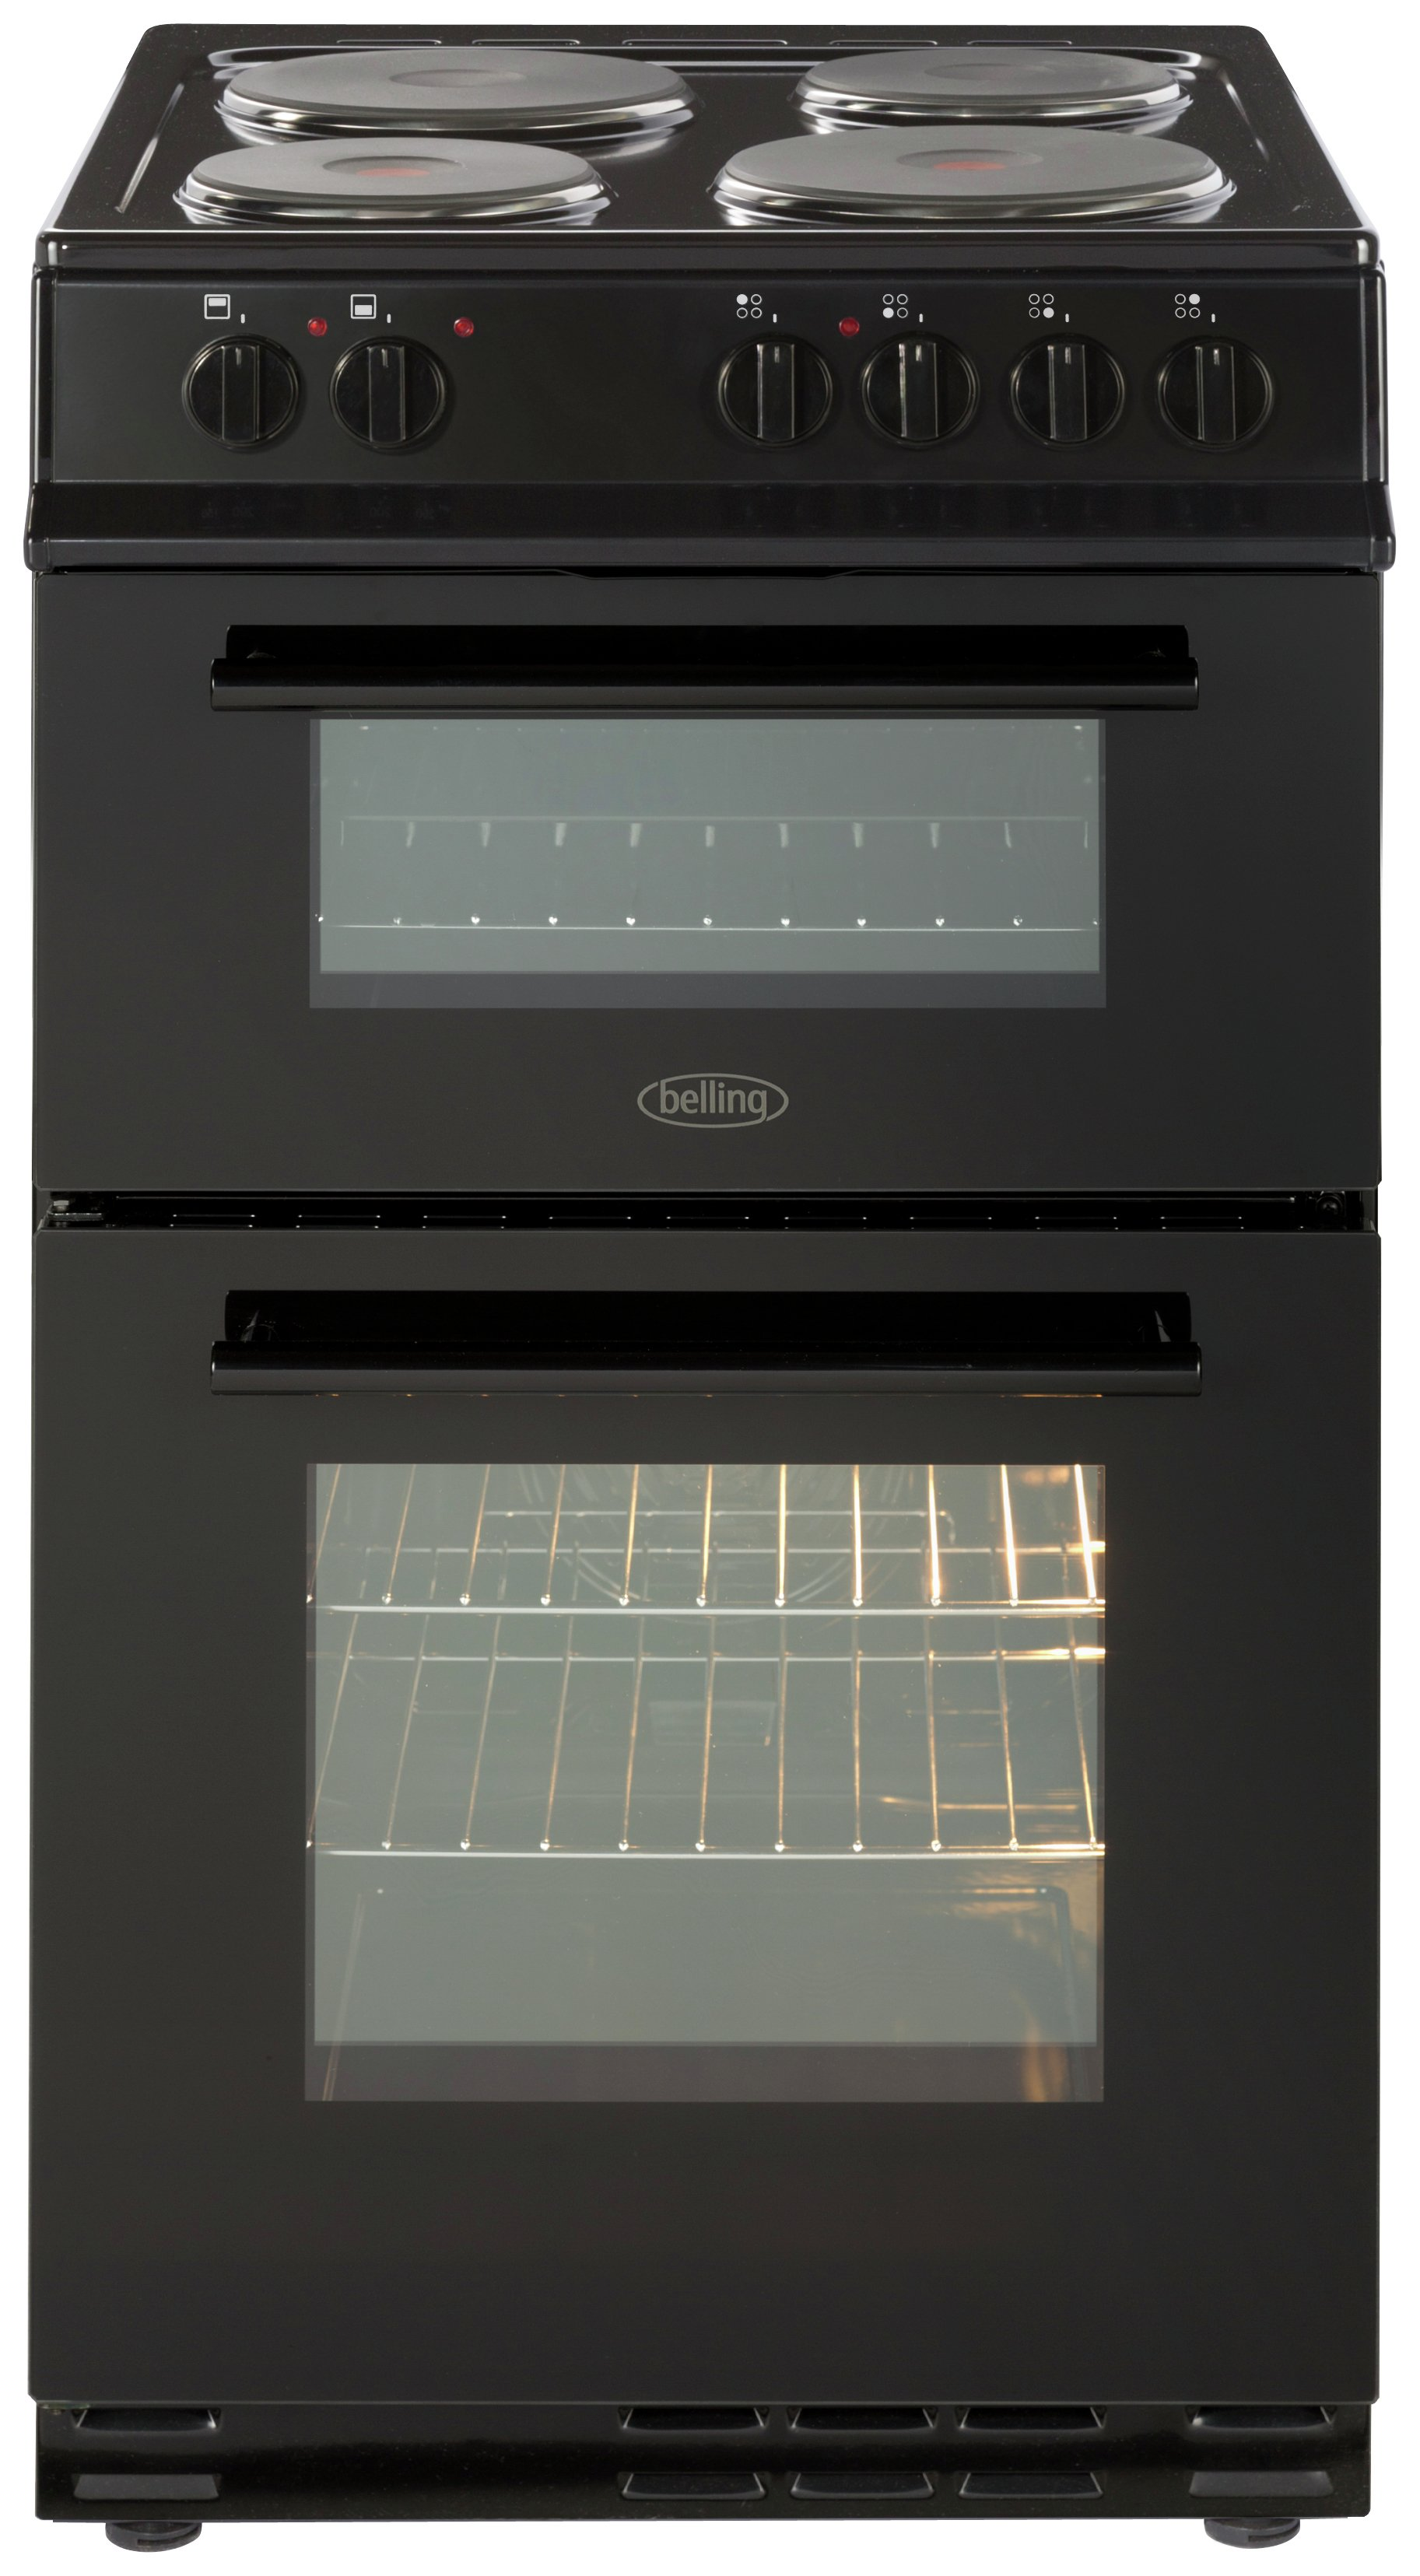 Belling - FS50EFDO - Electric Cooker - Black